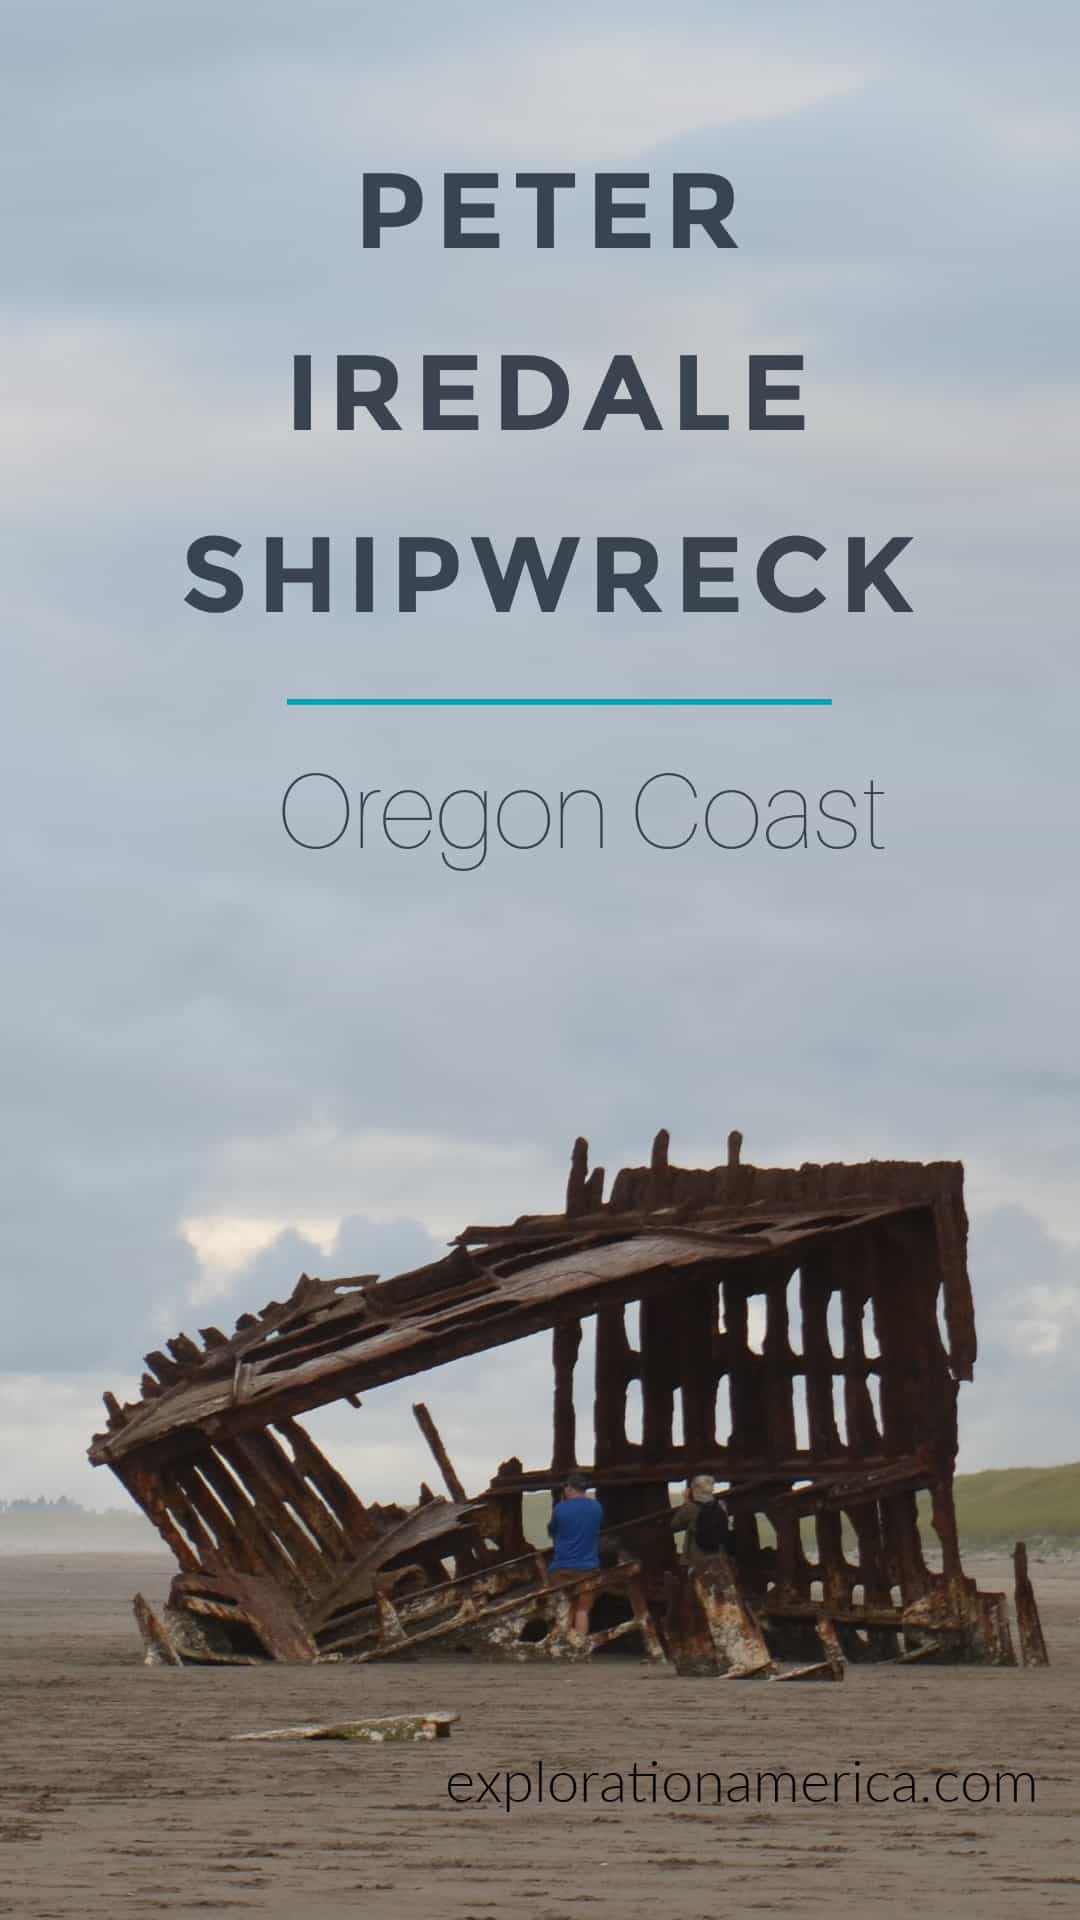 the Peter Iredale Shipwreck on the Oregon Coast